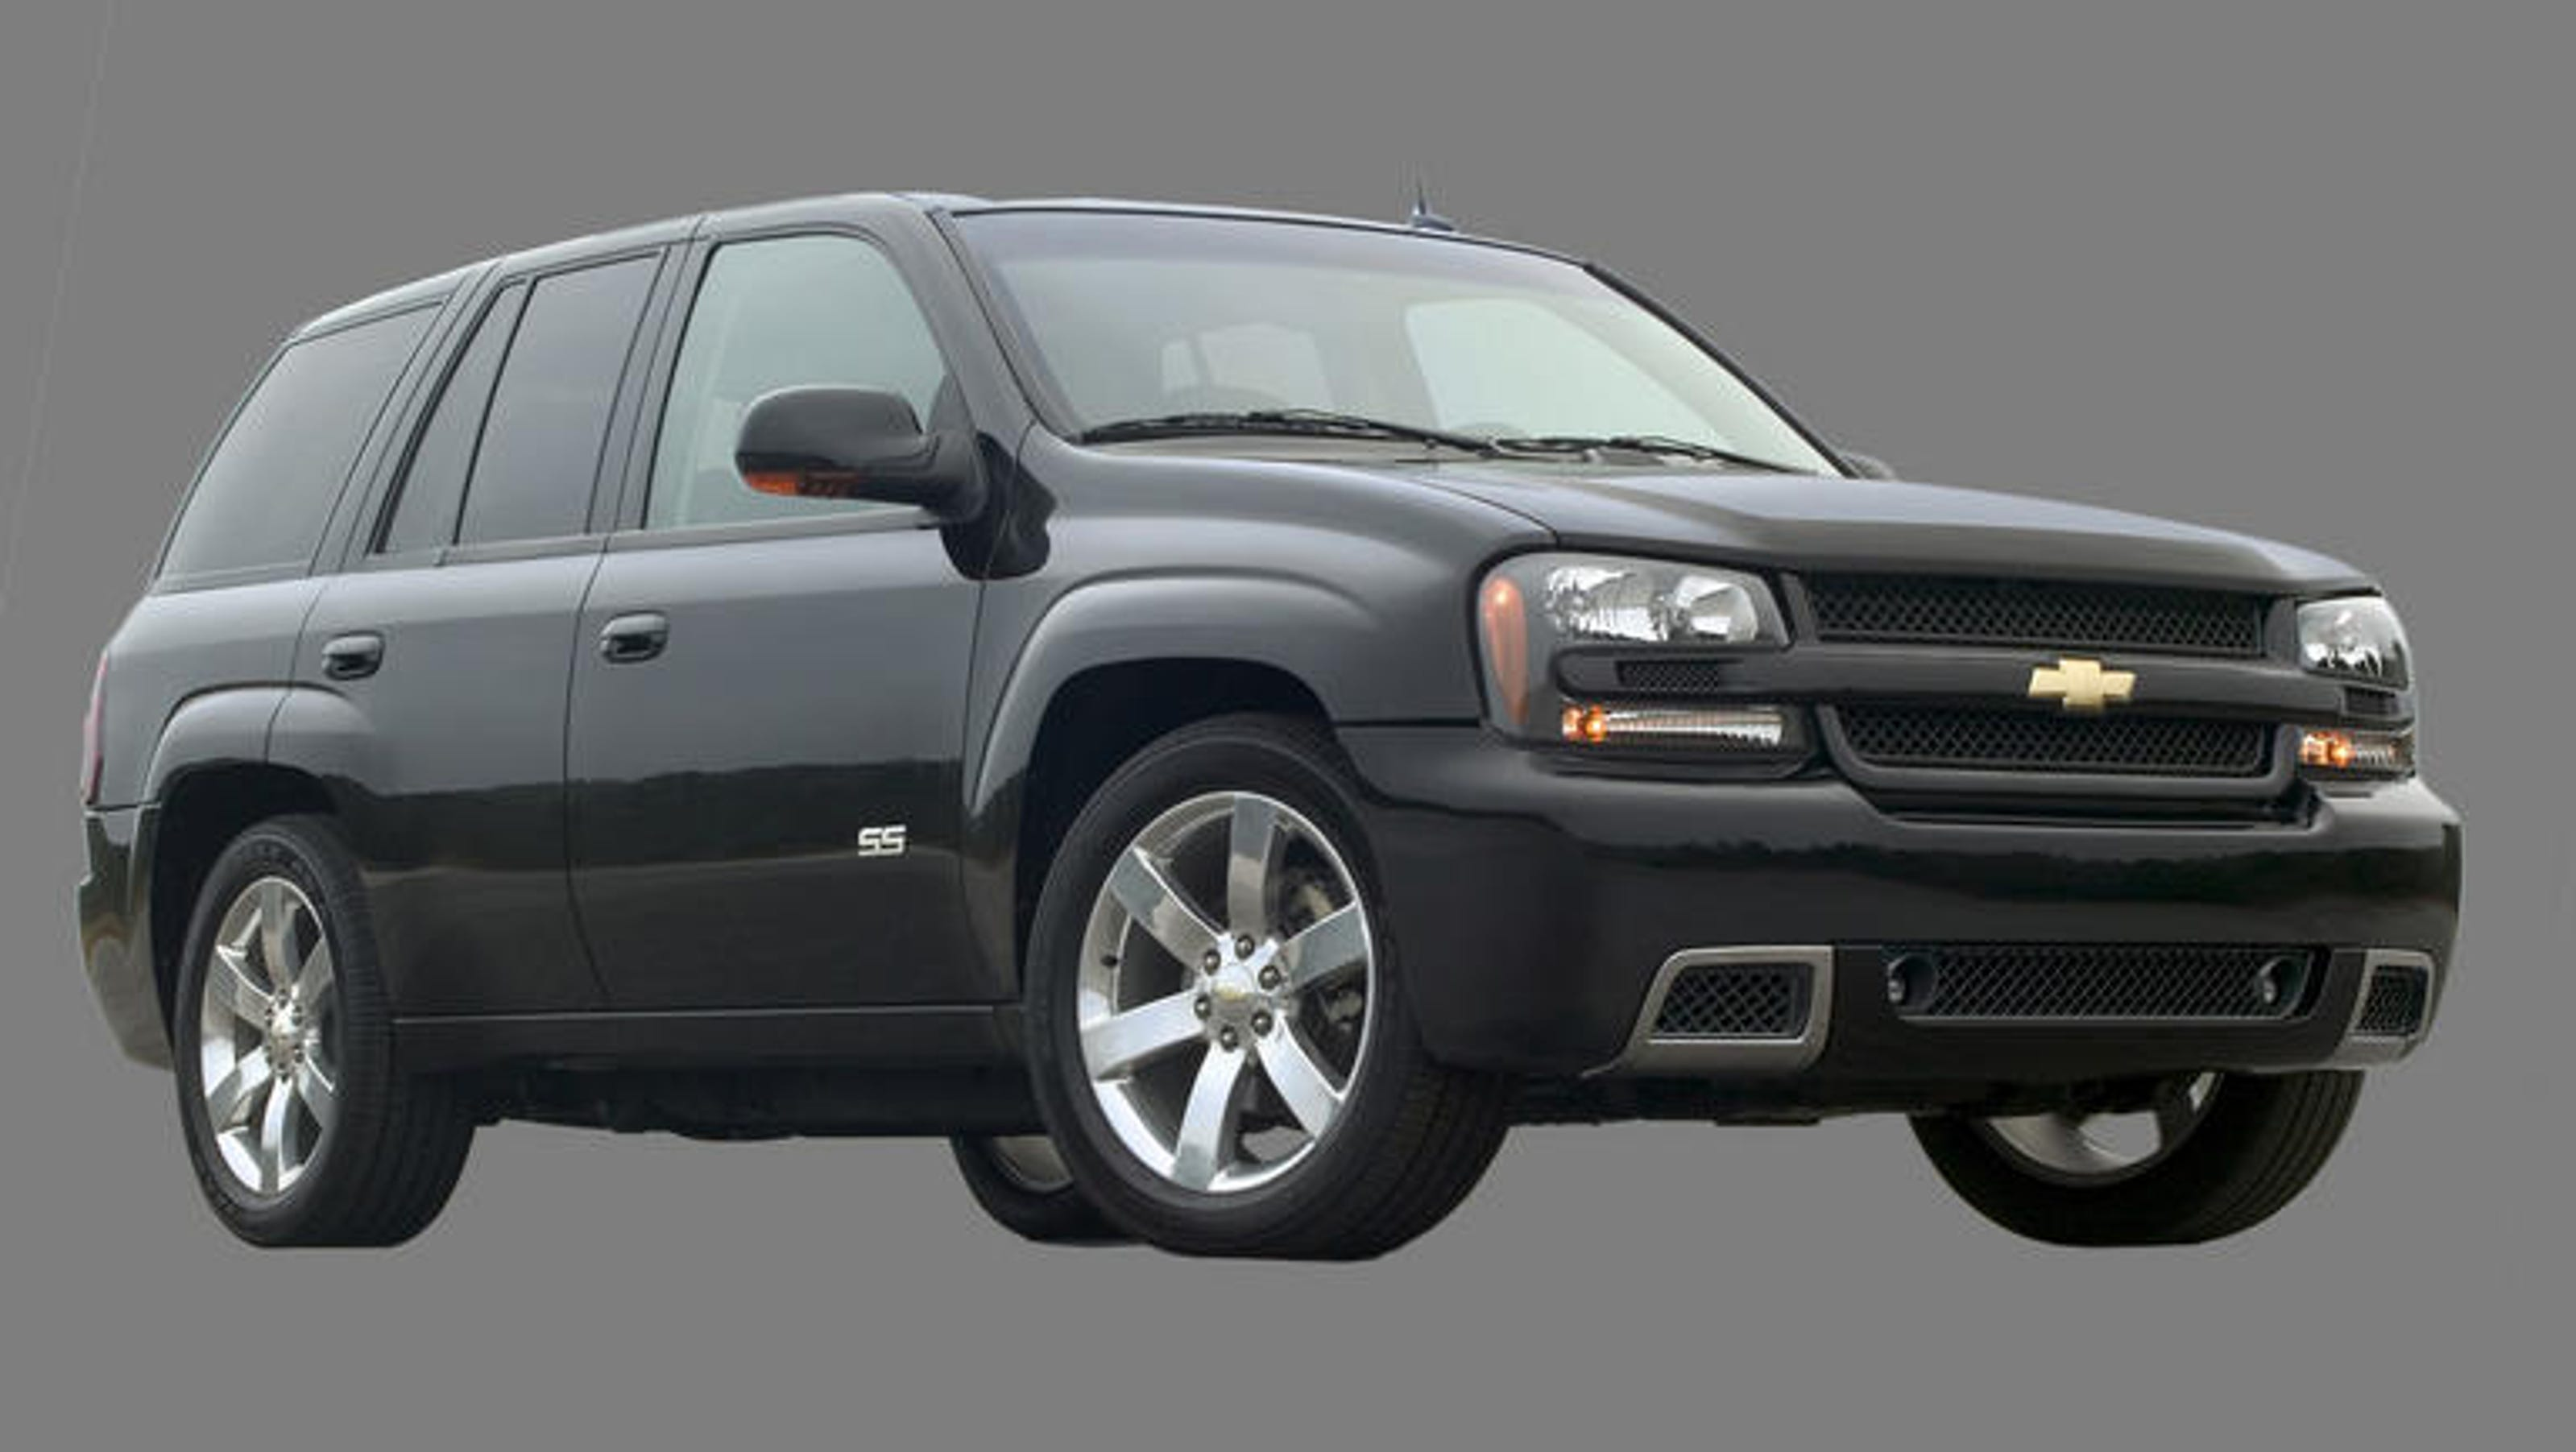 Gm Issues 3rd Recall On Suvs That Can Catch Fire Now It 39 S